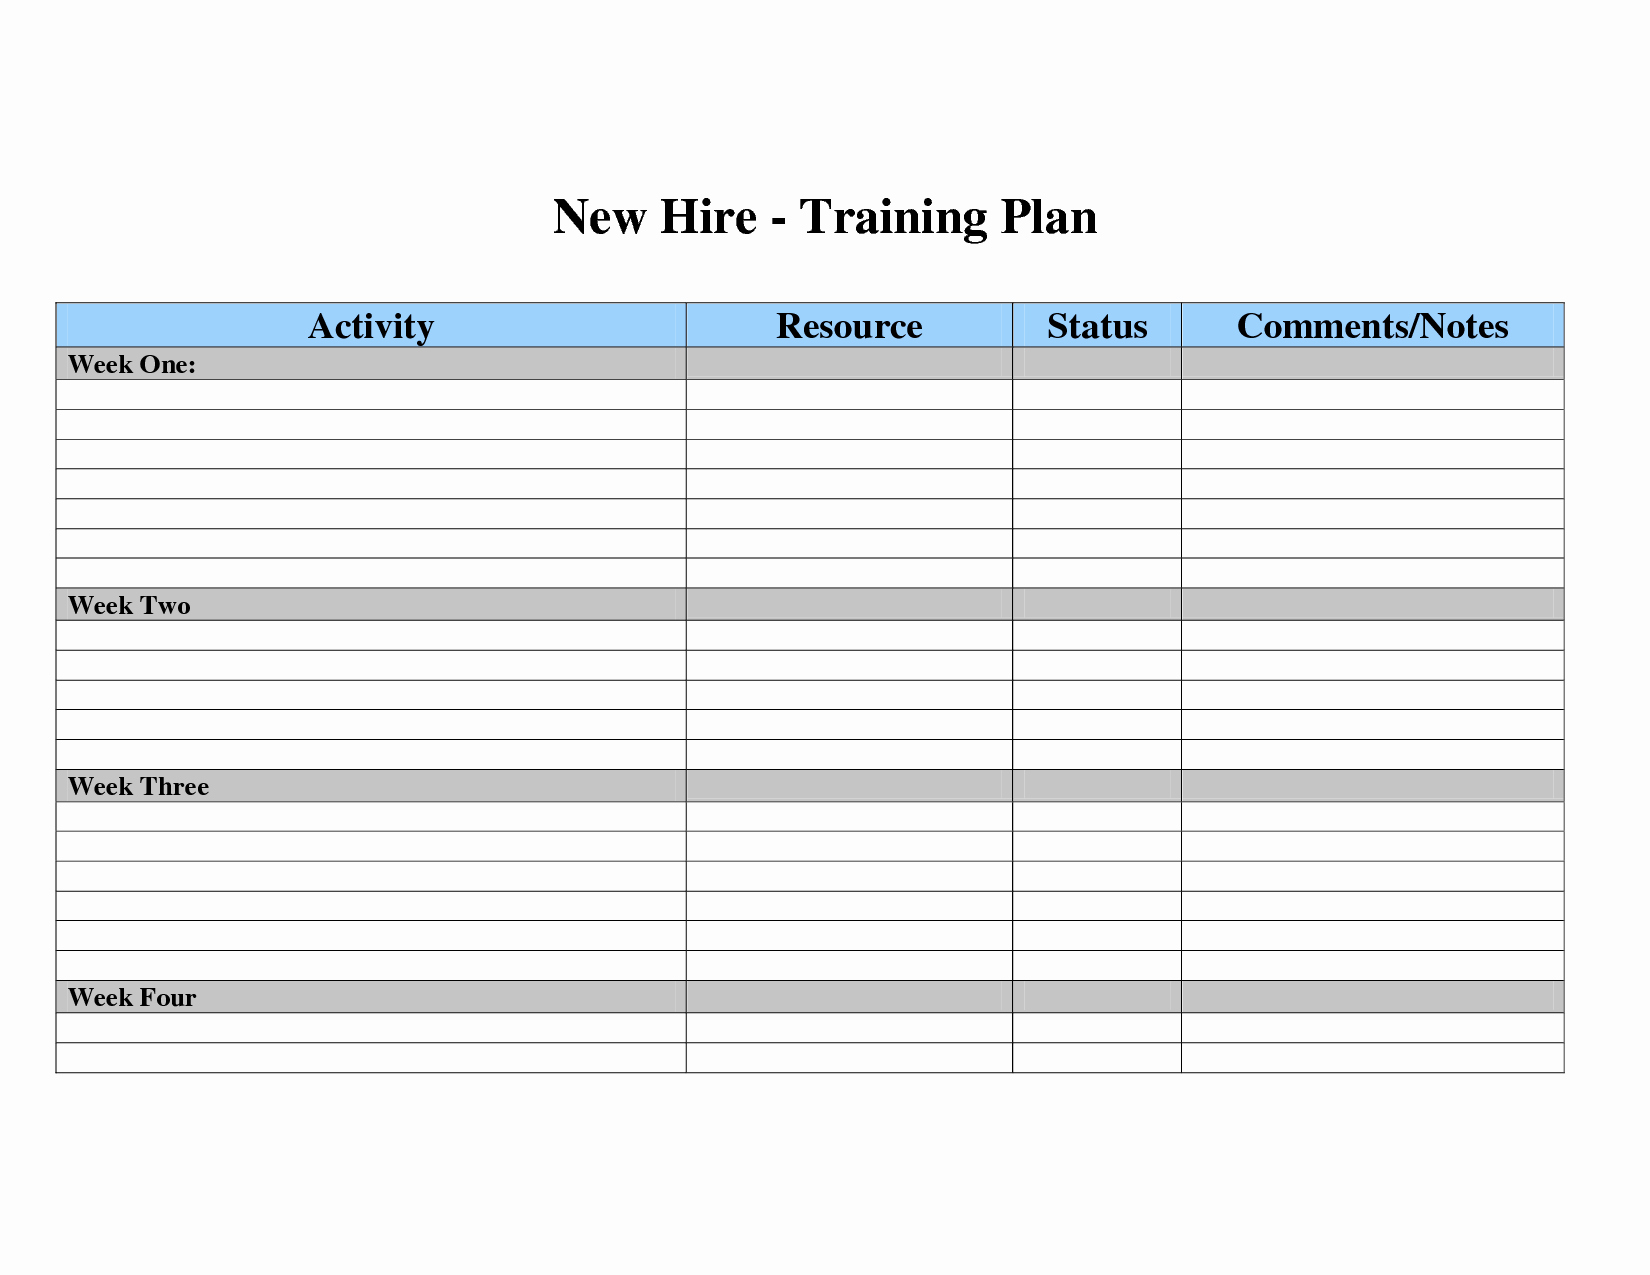 New Employee Training Plan Template Inspirational Employee Training Plan Template